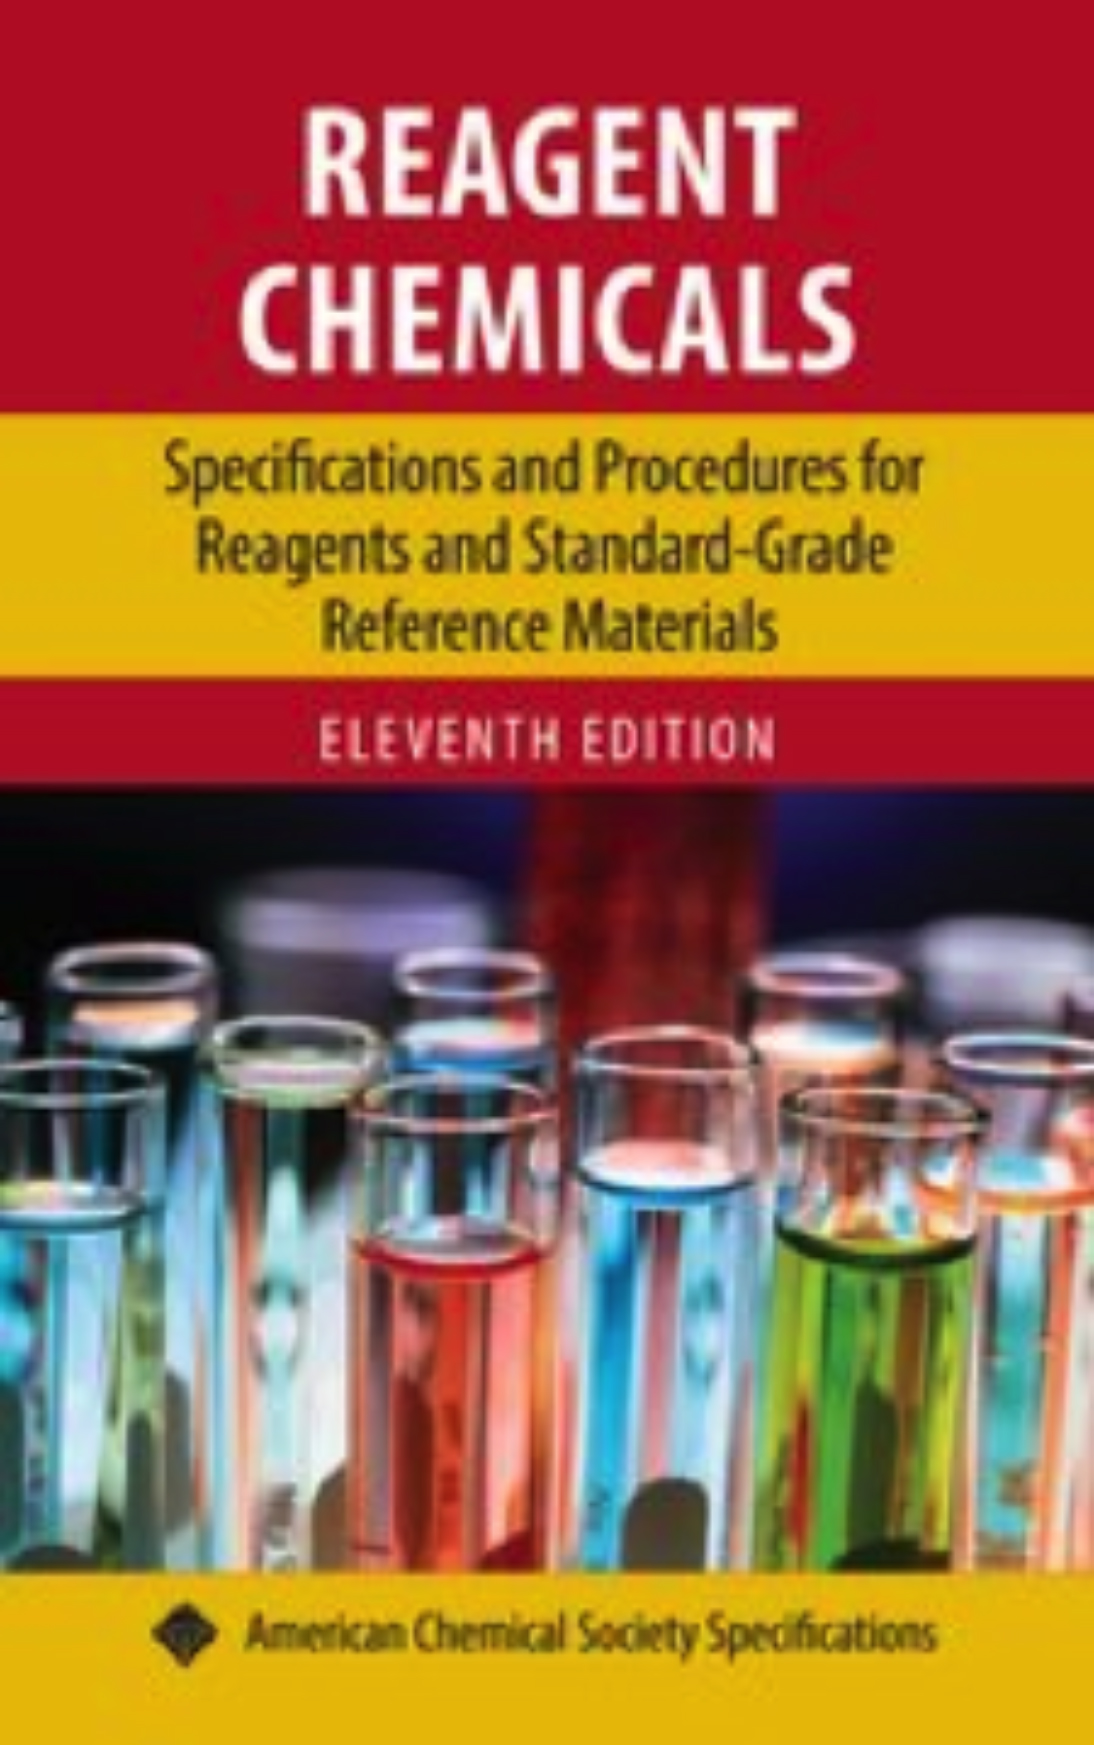 Order Reagent Chemicals 11th Edition